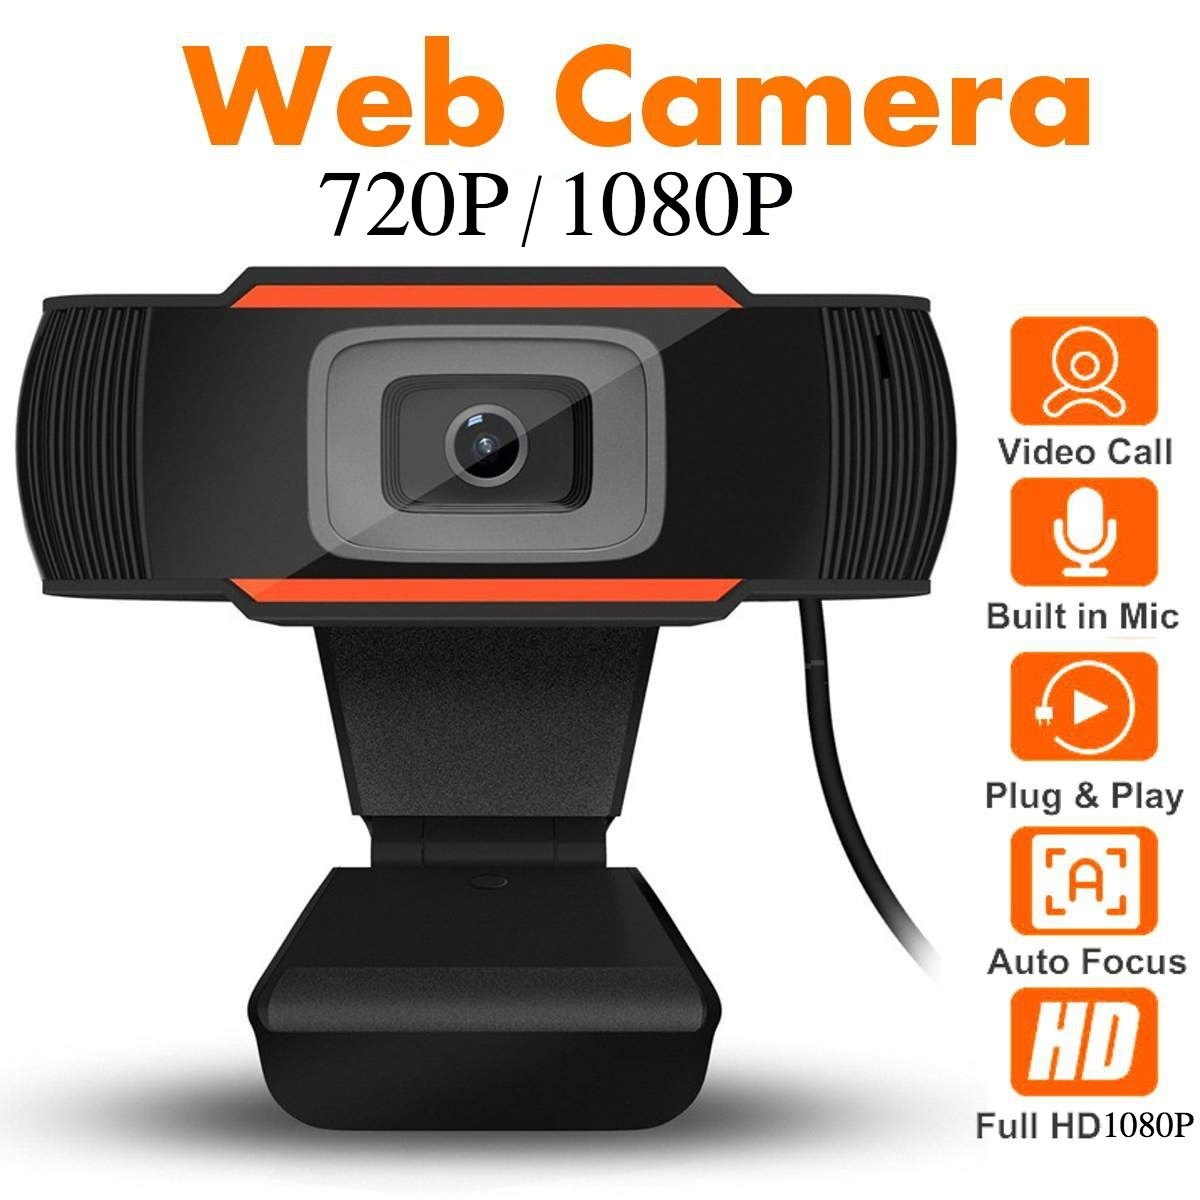 1080P /720P Webcam HD Camera with Built-in HD Microphone 1920 X 1080p USB Video for PC Computer